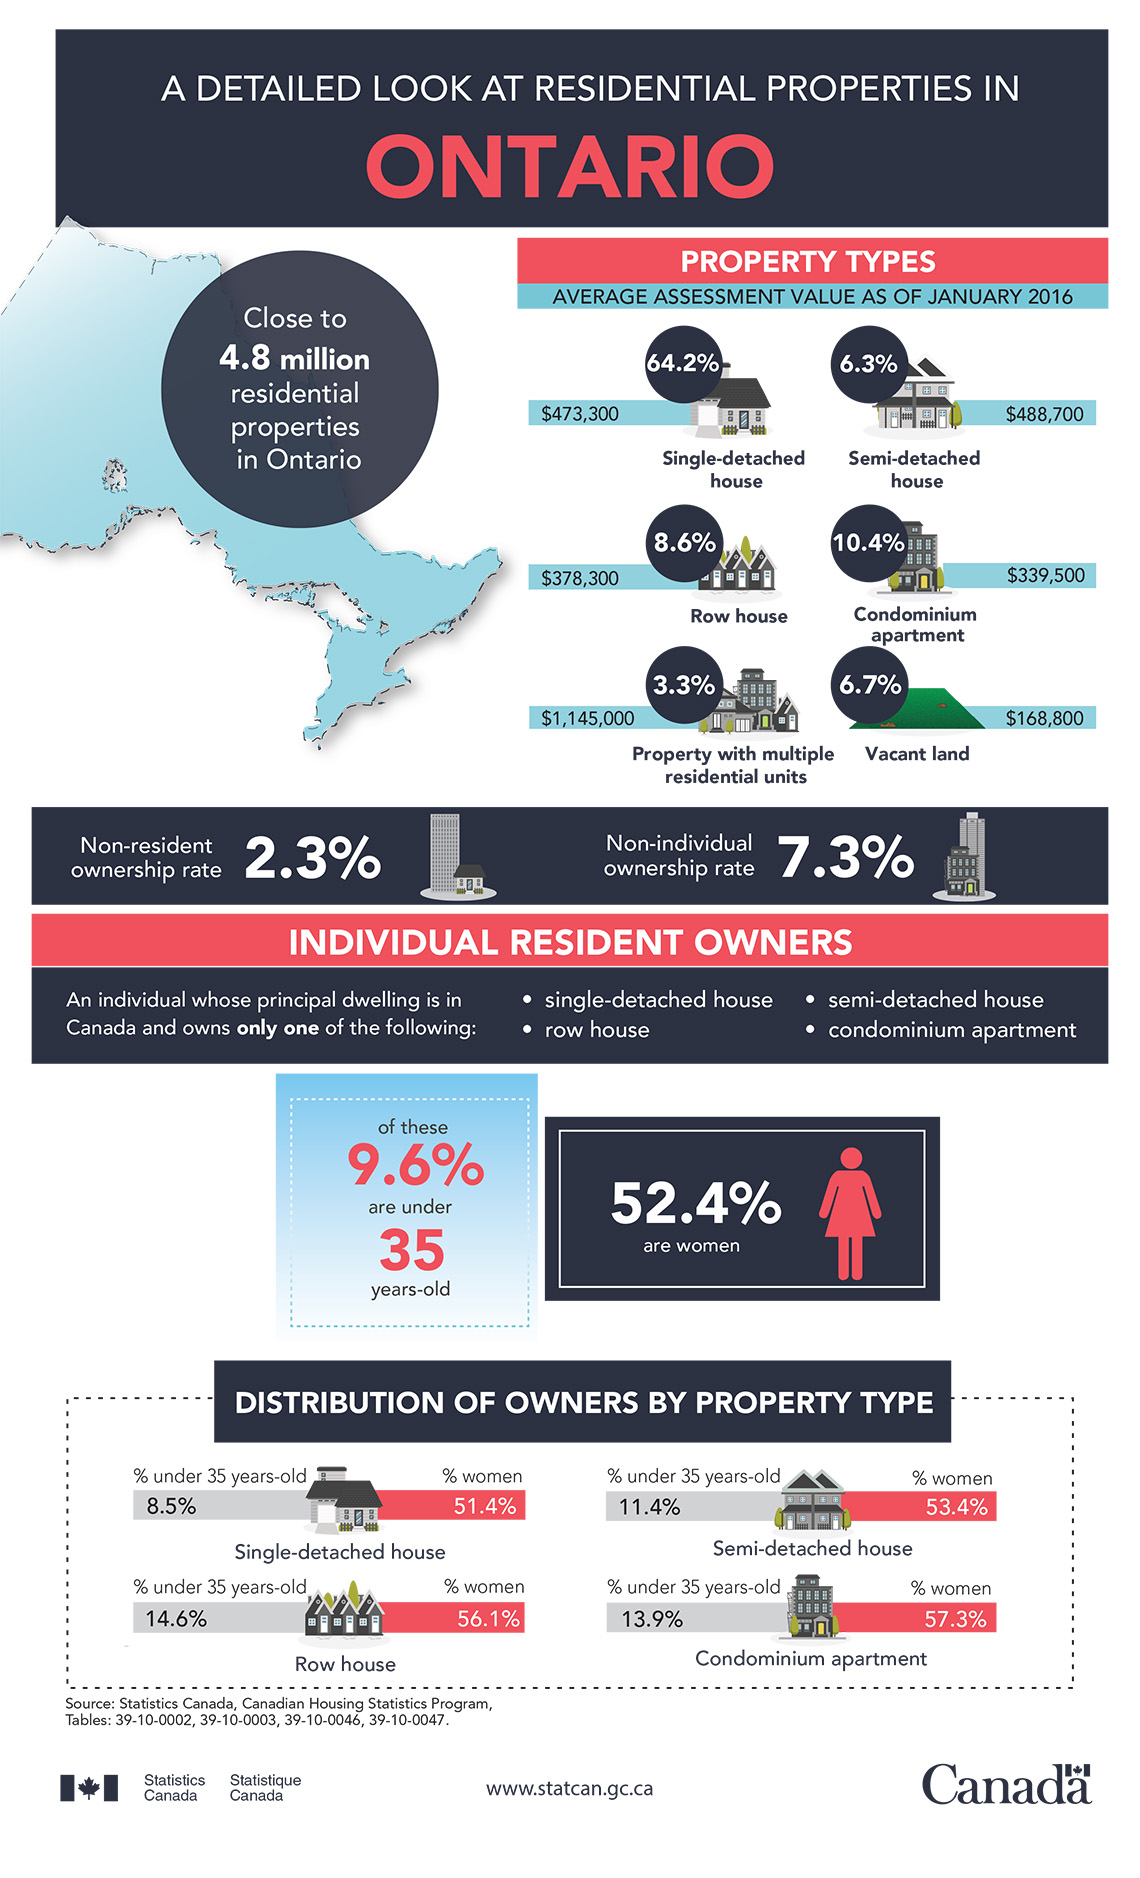 Infographic: A detailed look at residential properties in Ontario